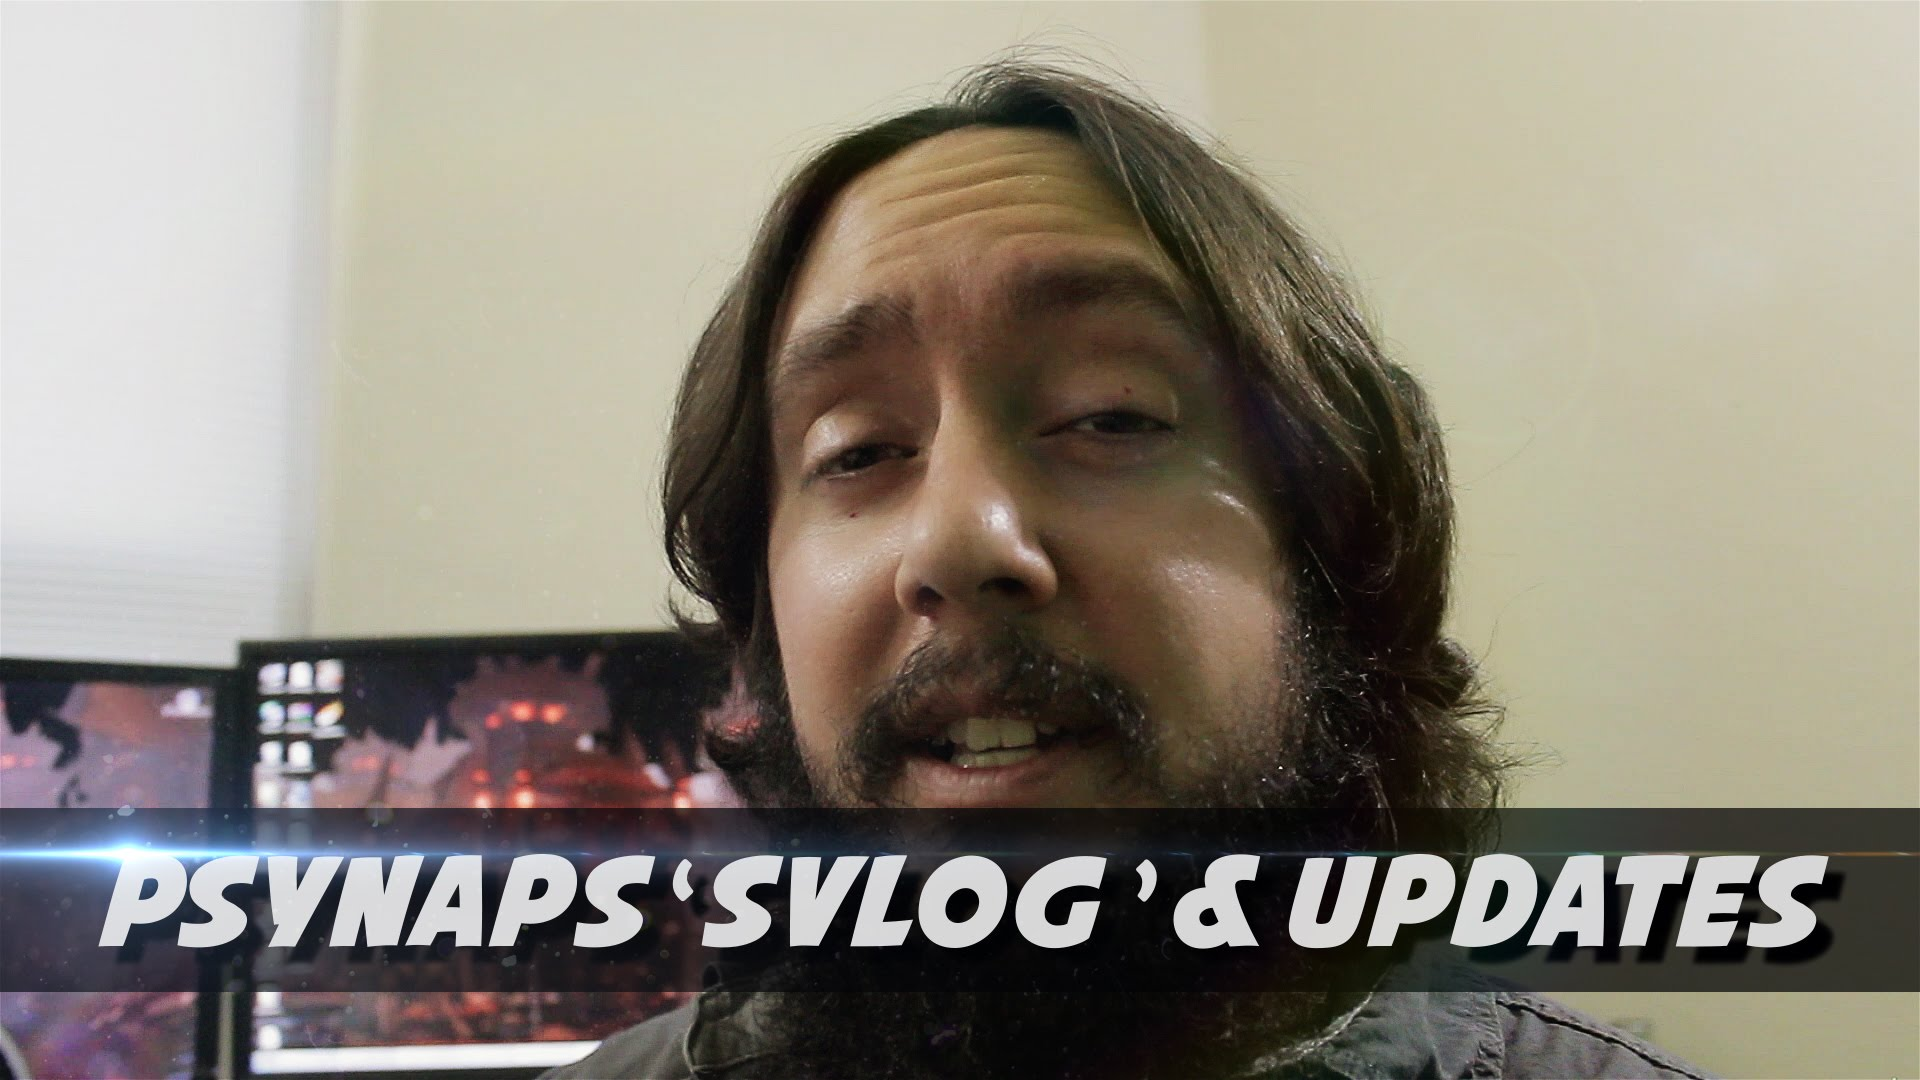 """Psynaps """"SVlogs"""" on WoW Paladin Updates, Legends of the Arena, Xetch, Nexius, and more!"""